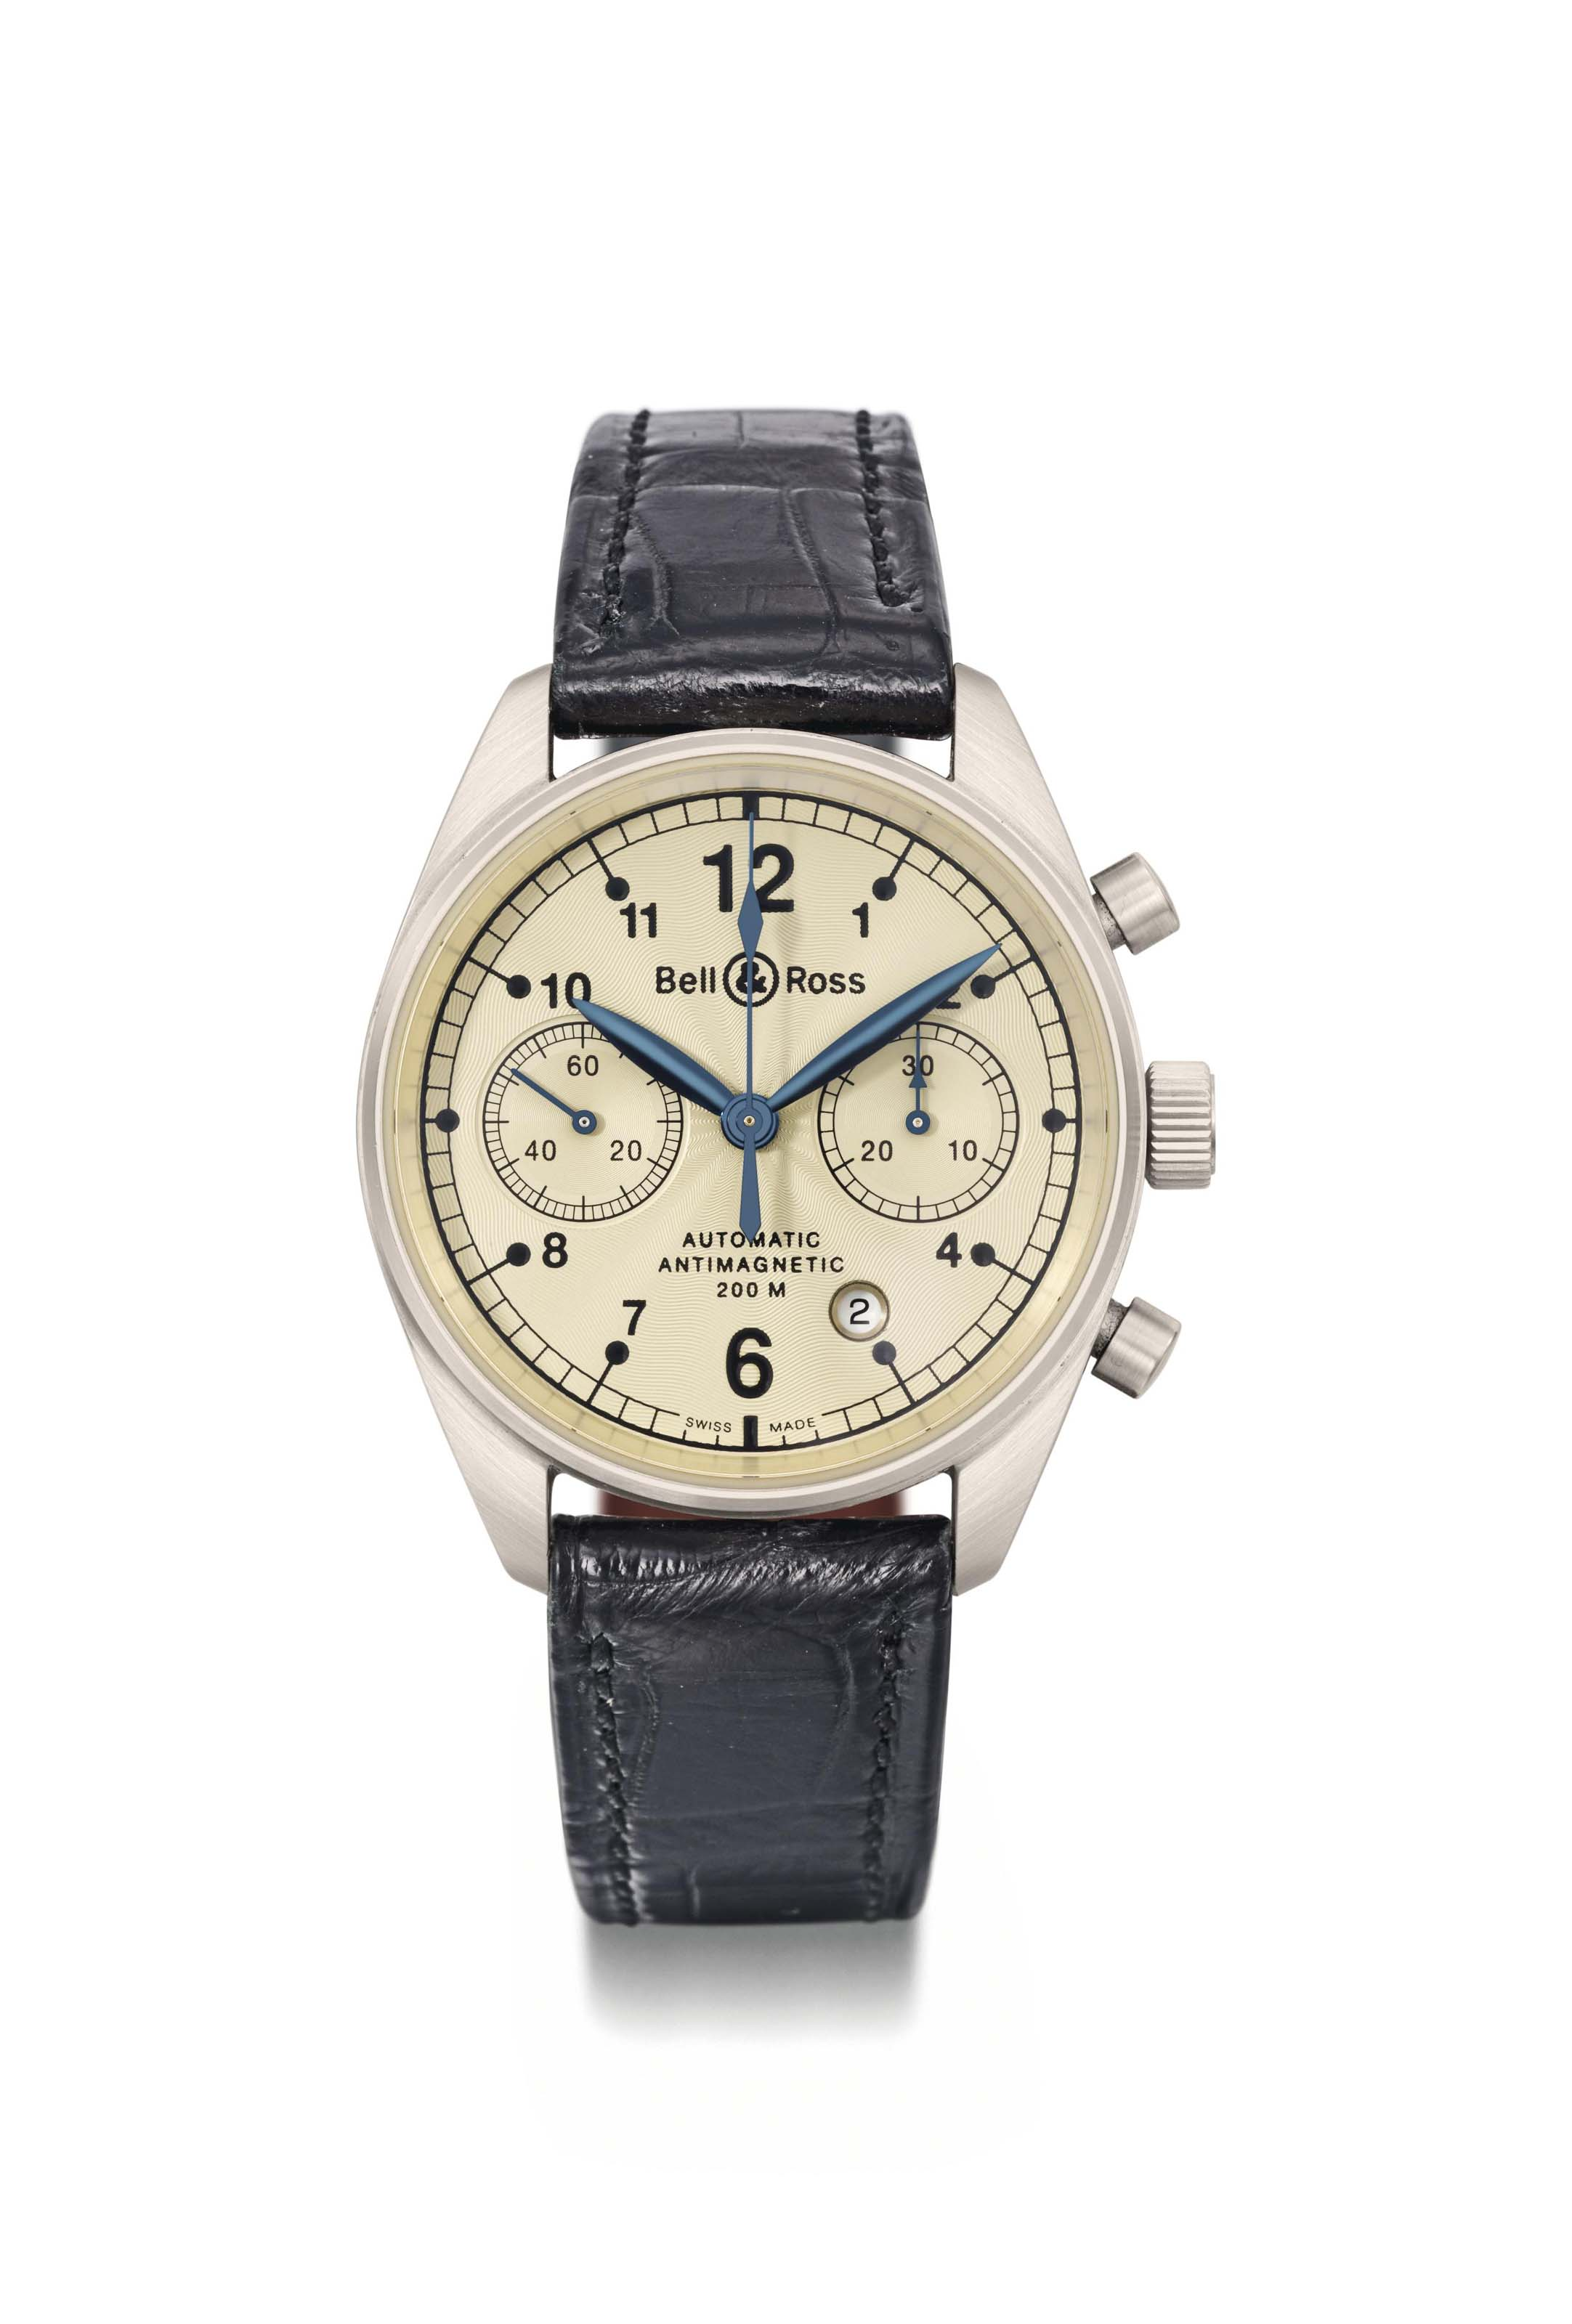 Bell & Ross. An 18K white gold automatic chronograph wristwatch with date